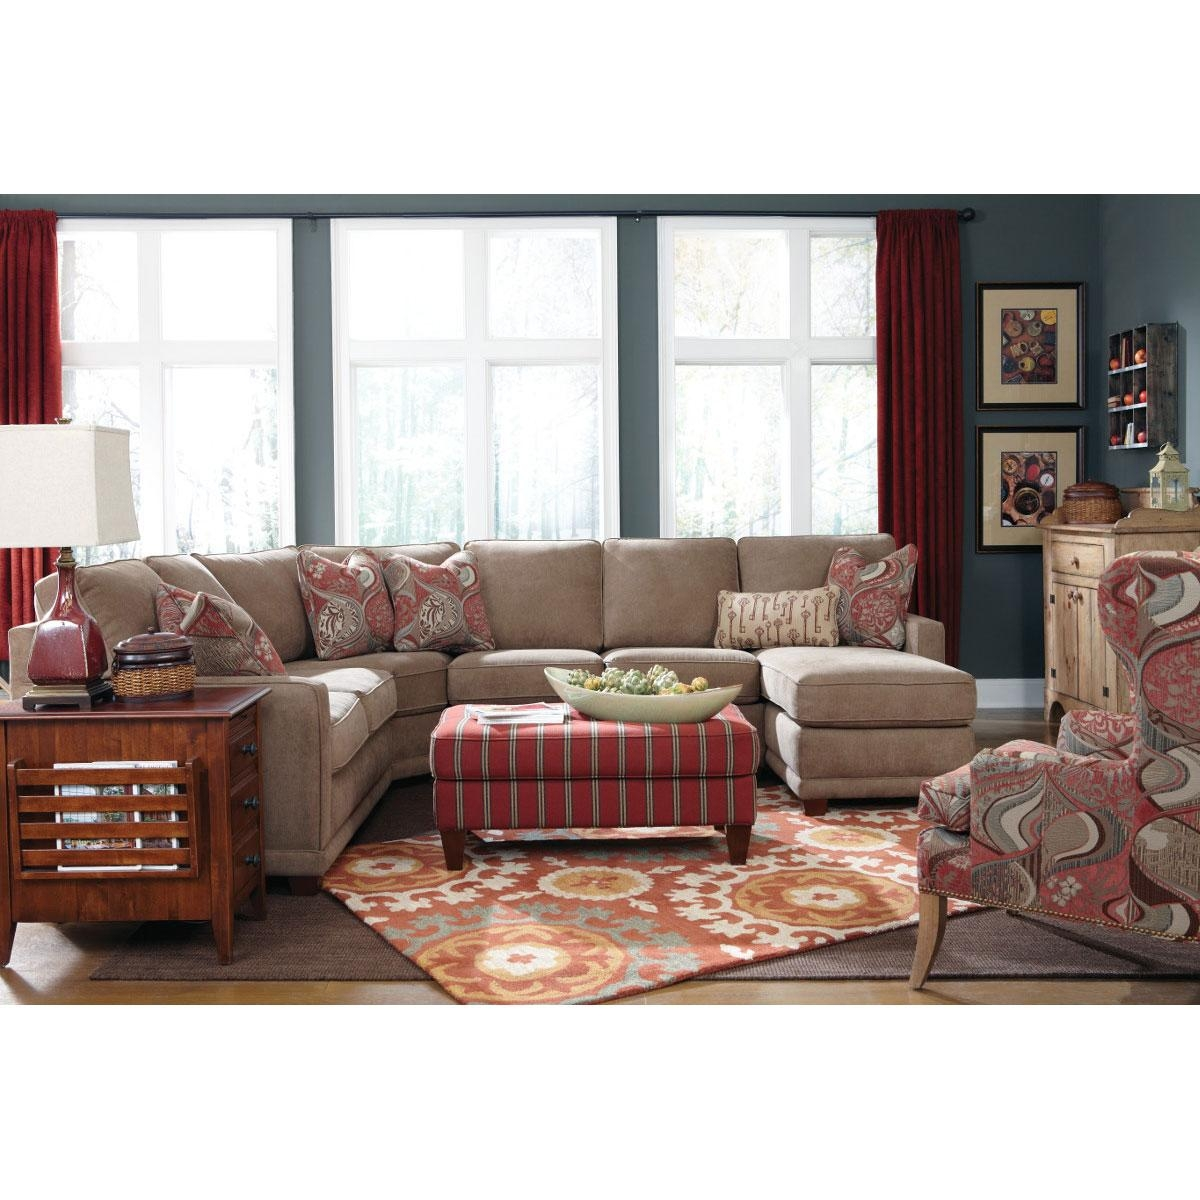 Kennedy Sectional For Lazyboy Sectional (Image 11 of 20)